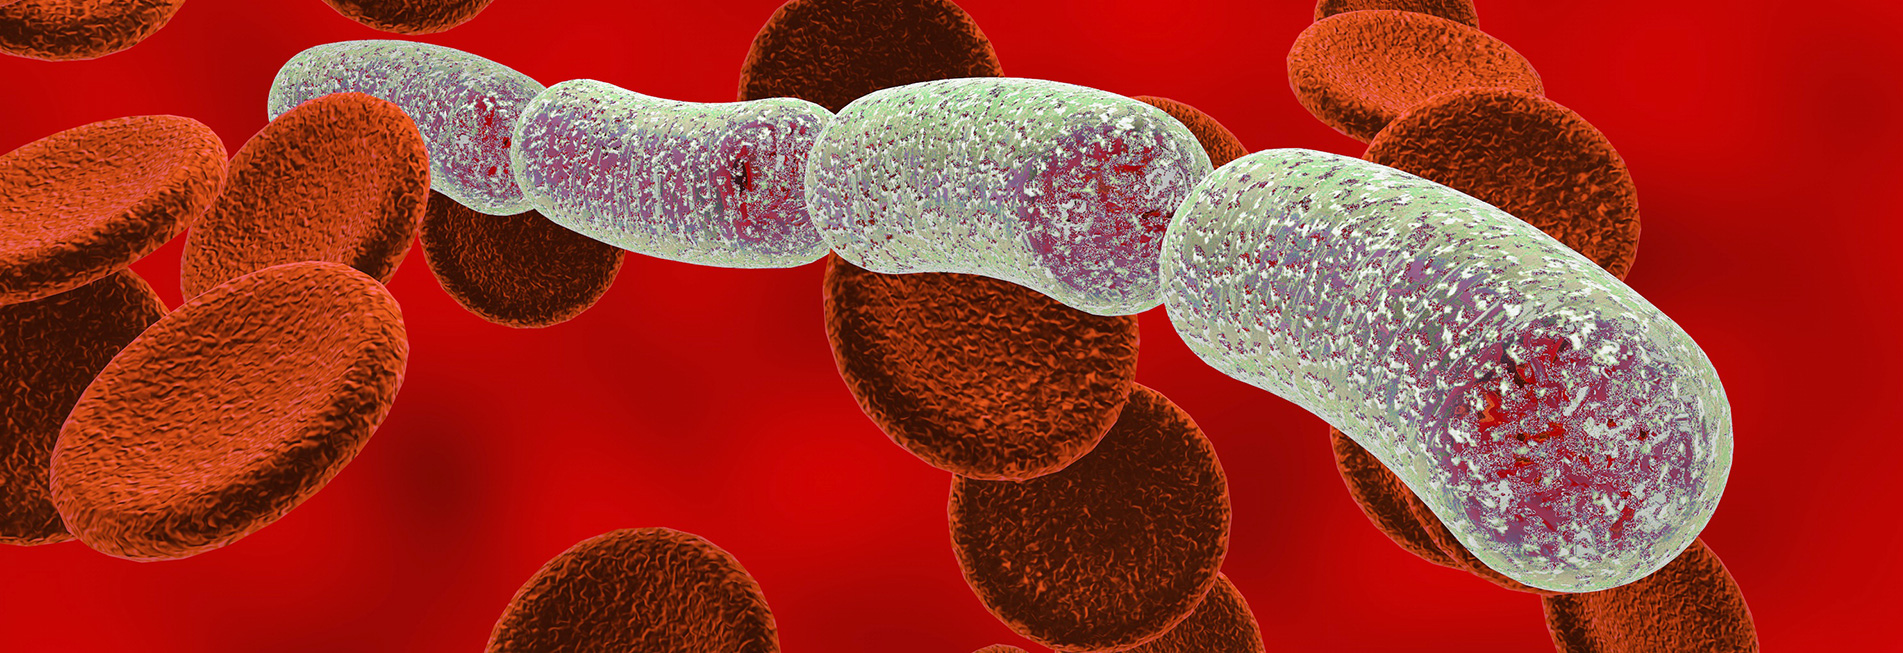 Diagnosis of bacillus anthracis infection based on detection of bacterial secreted biomarkers